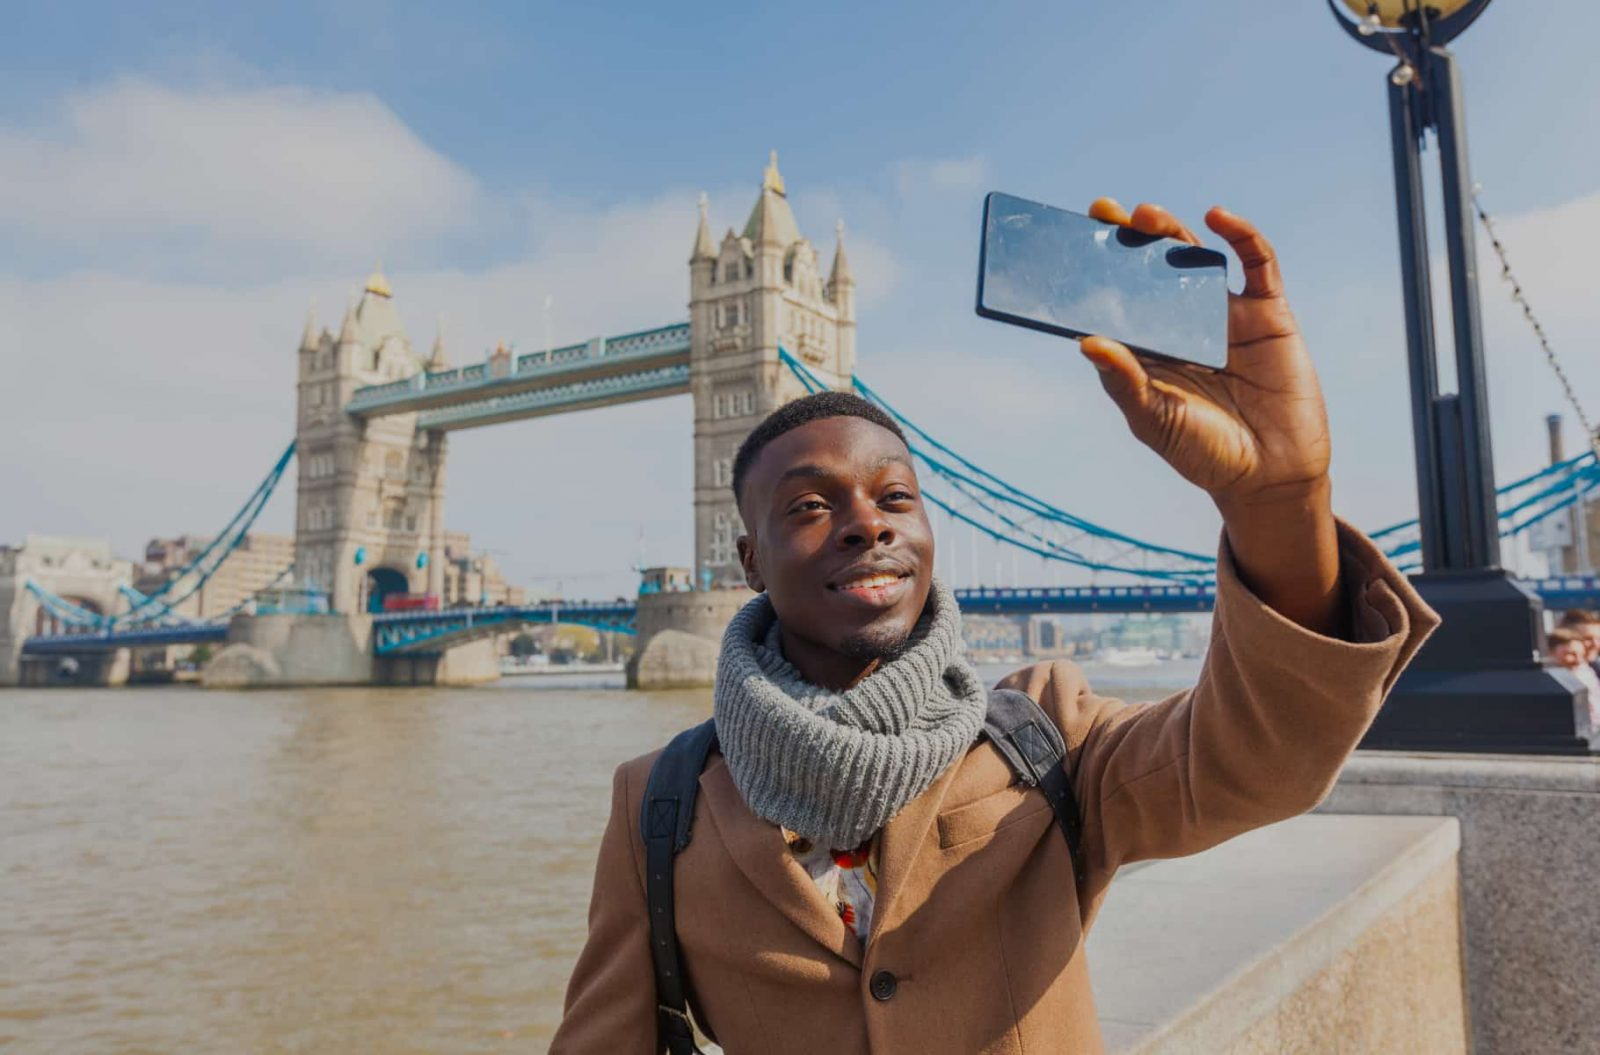 Selfie by the river Thames